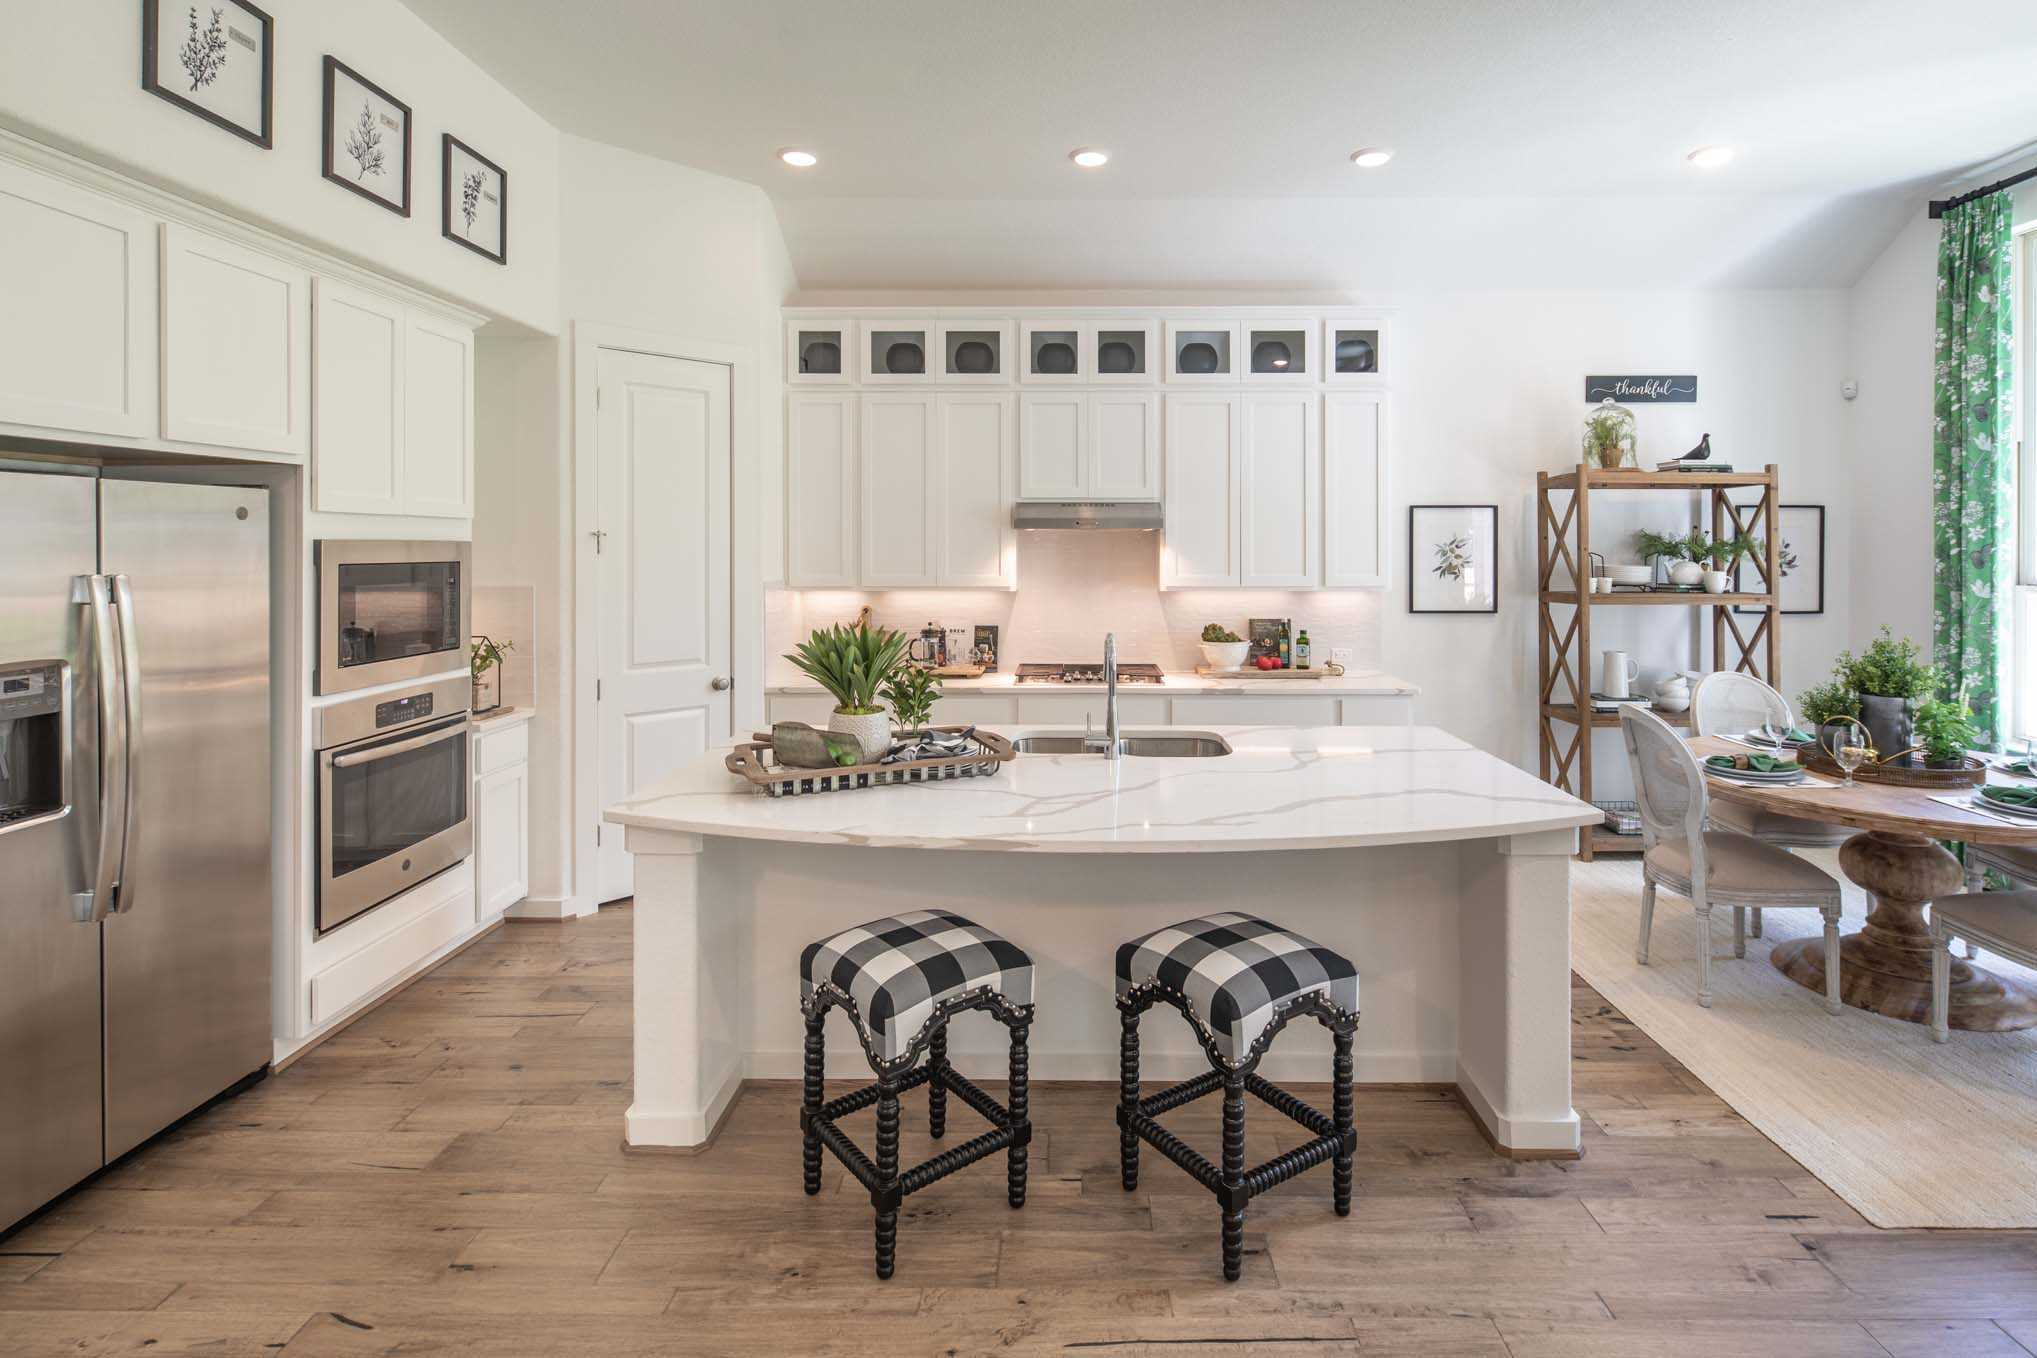 Kitchen featured in the Plan Fairhall By Highland Homes in Dallas, TX